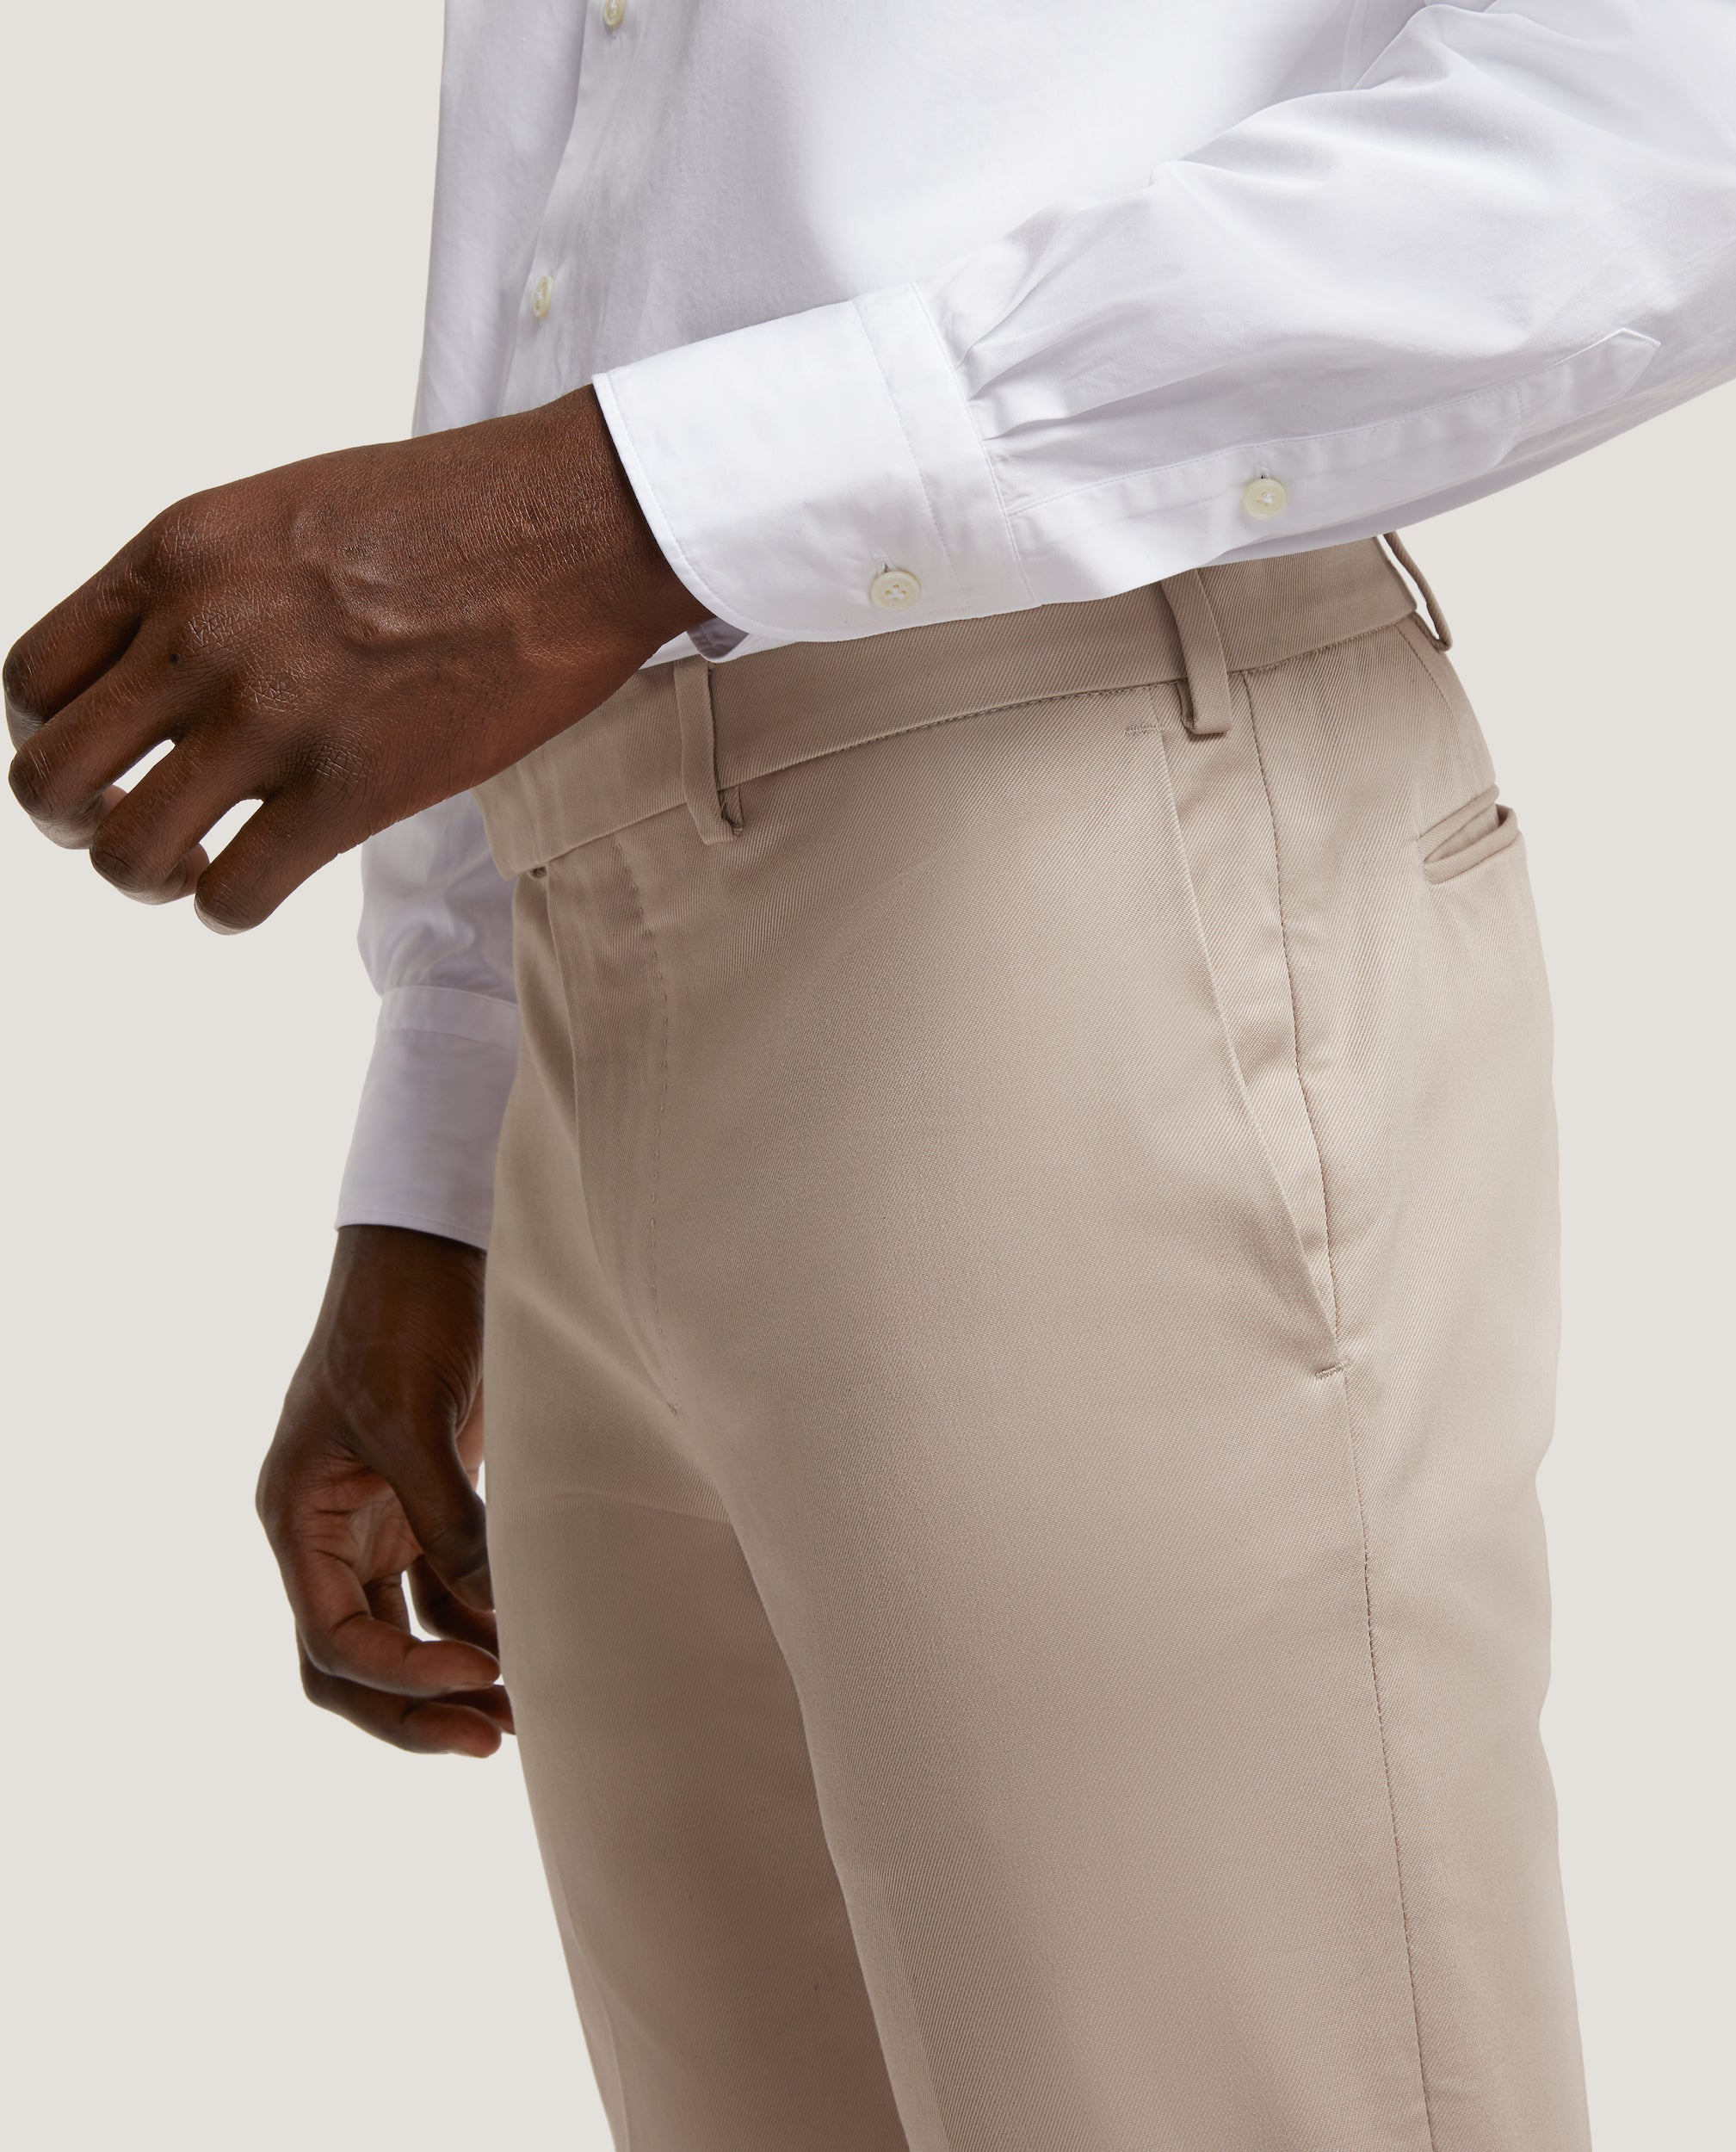 GEHRY Chino trousers | Slim fit | Cotton twill | Pebble